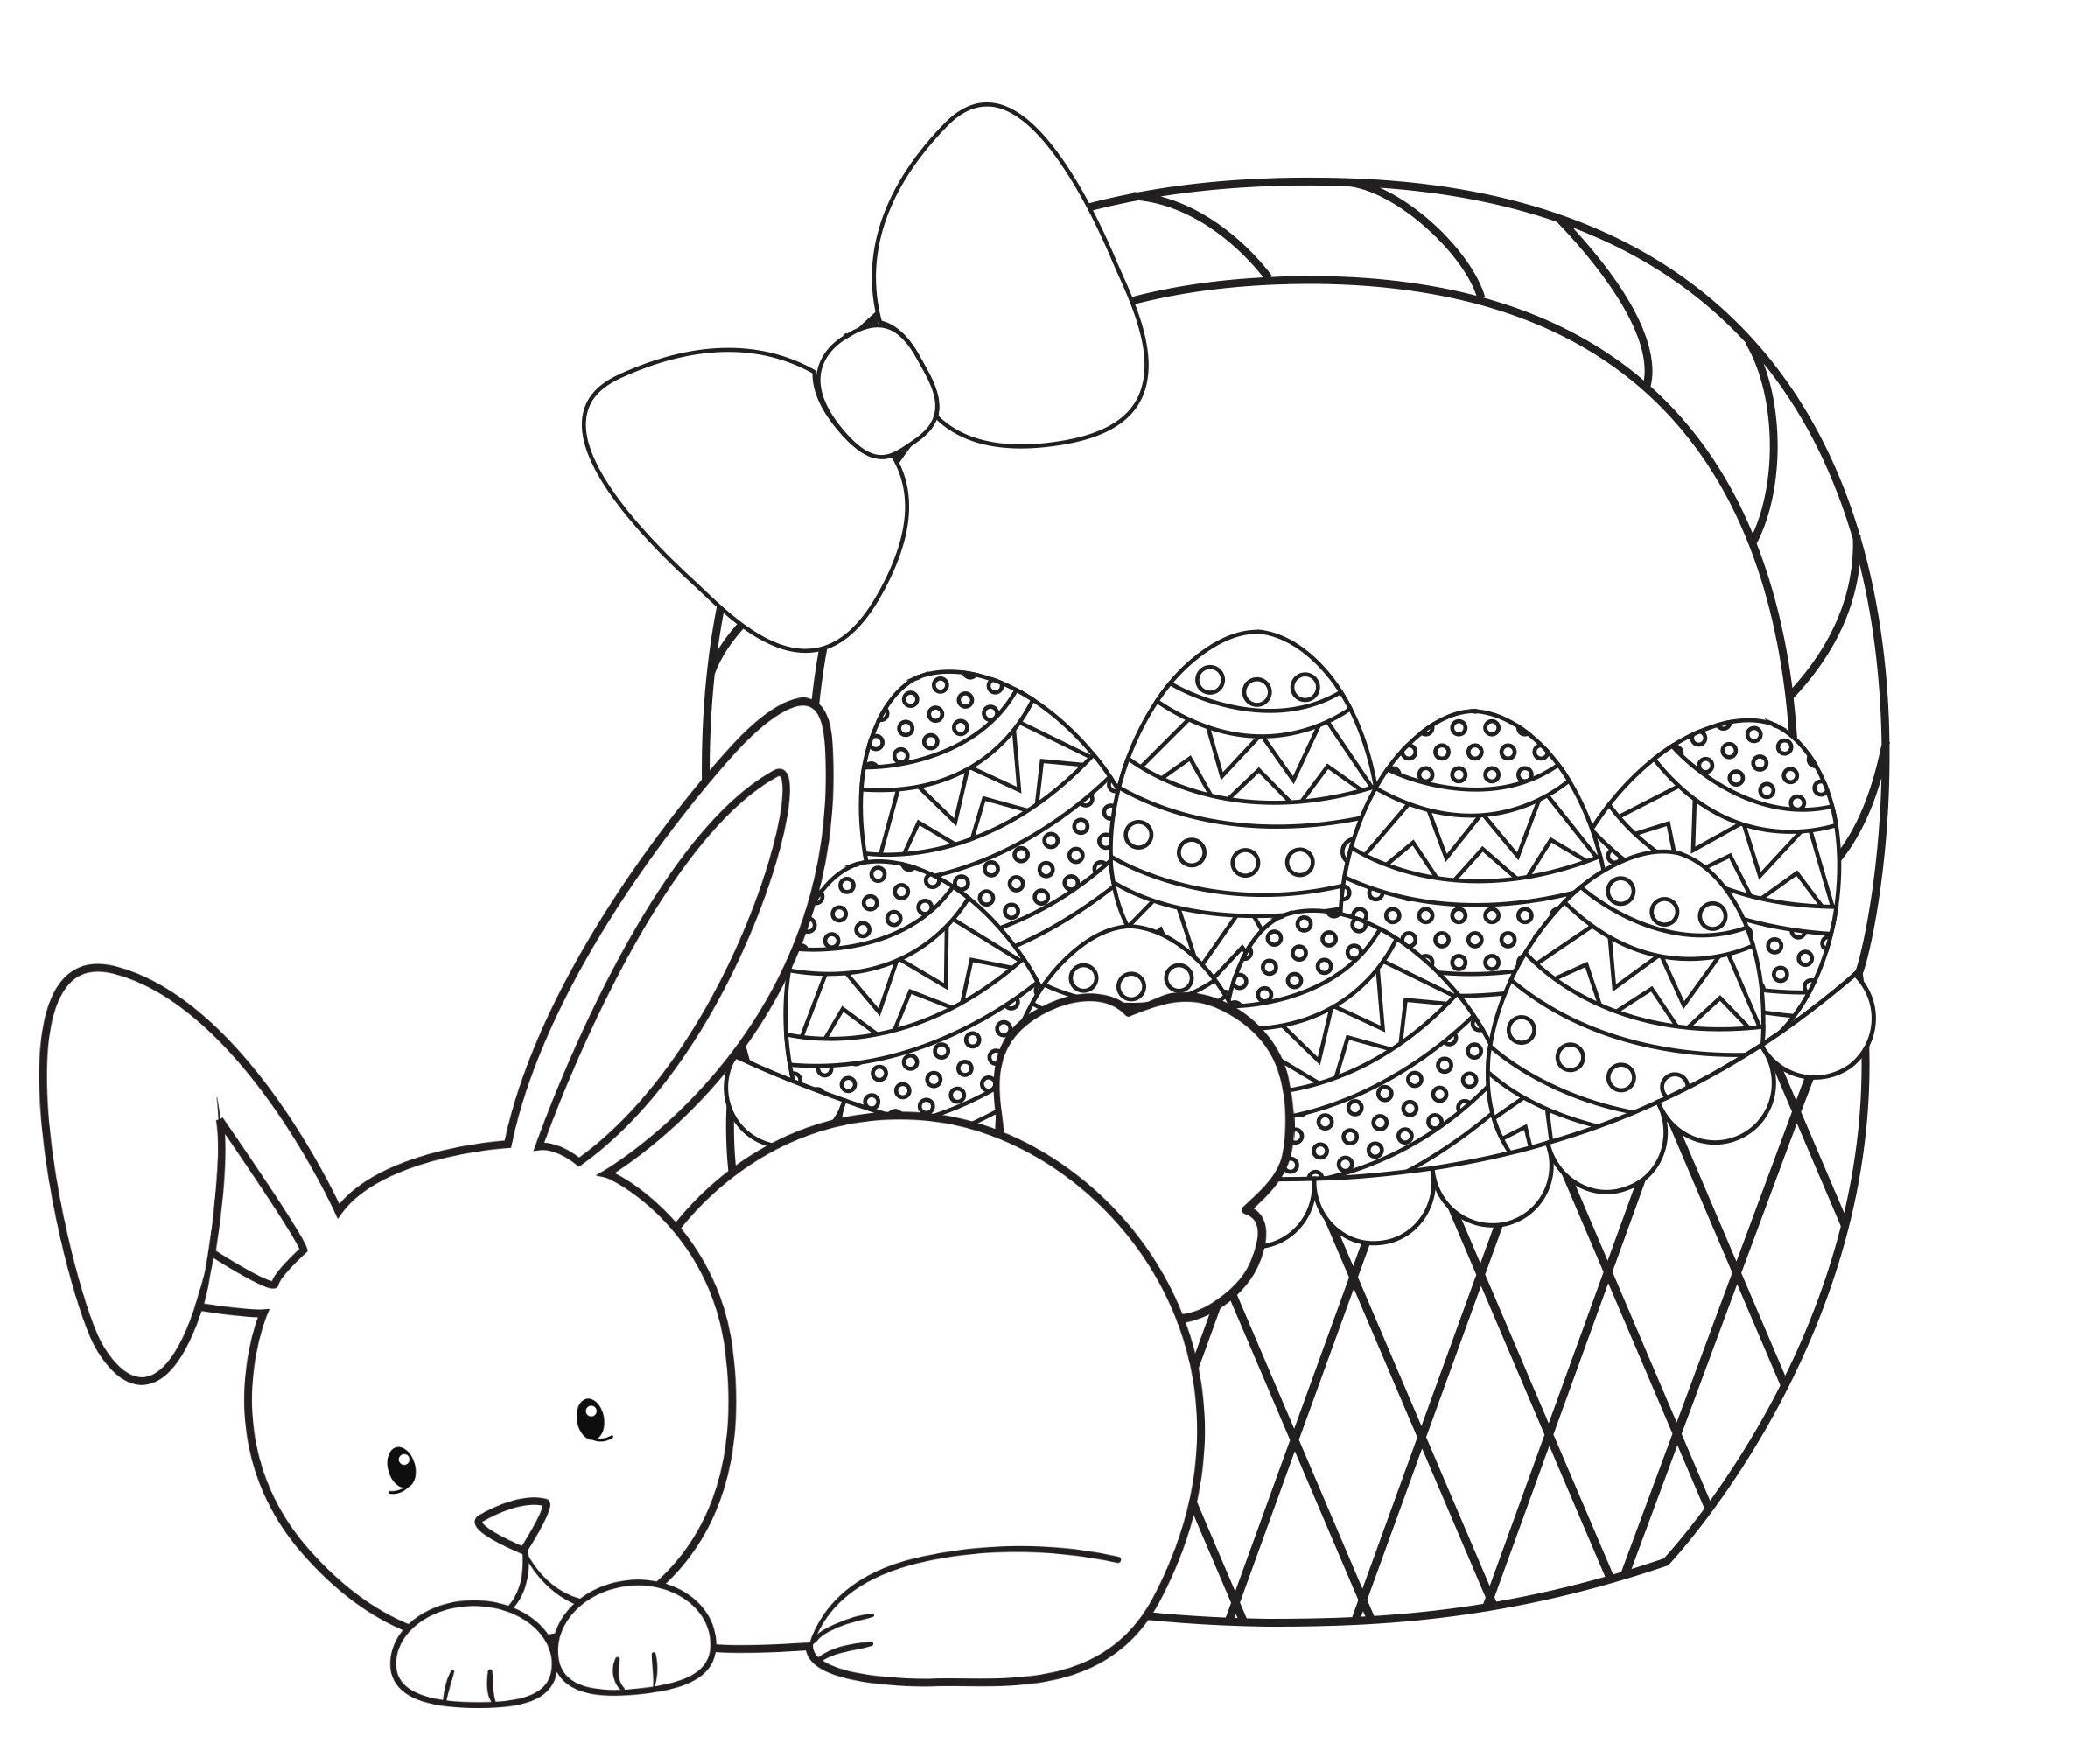 Easter Coloring Pages For Kids - Crazy Little Projects - Free Printable Easter Coloring Pages For Toddlers